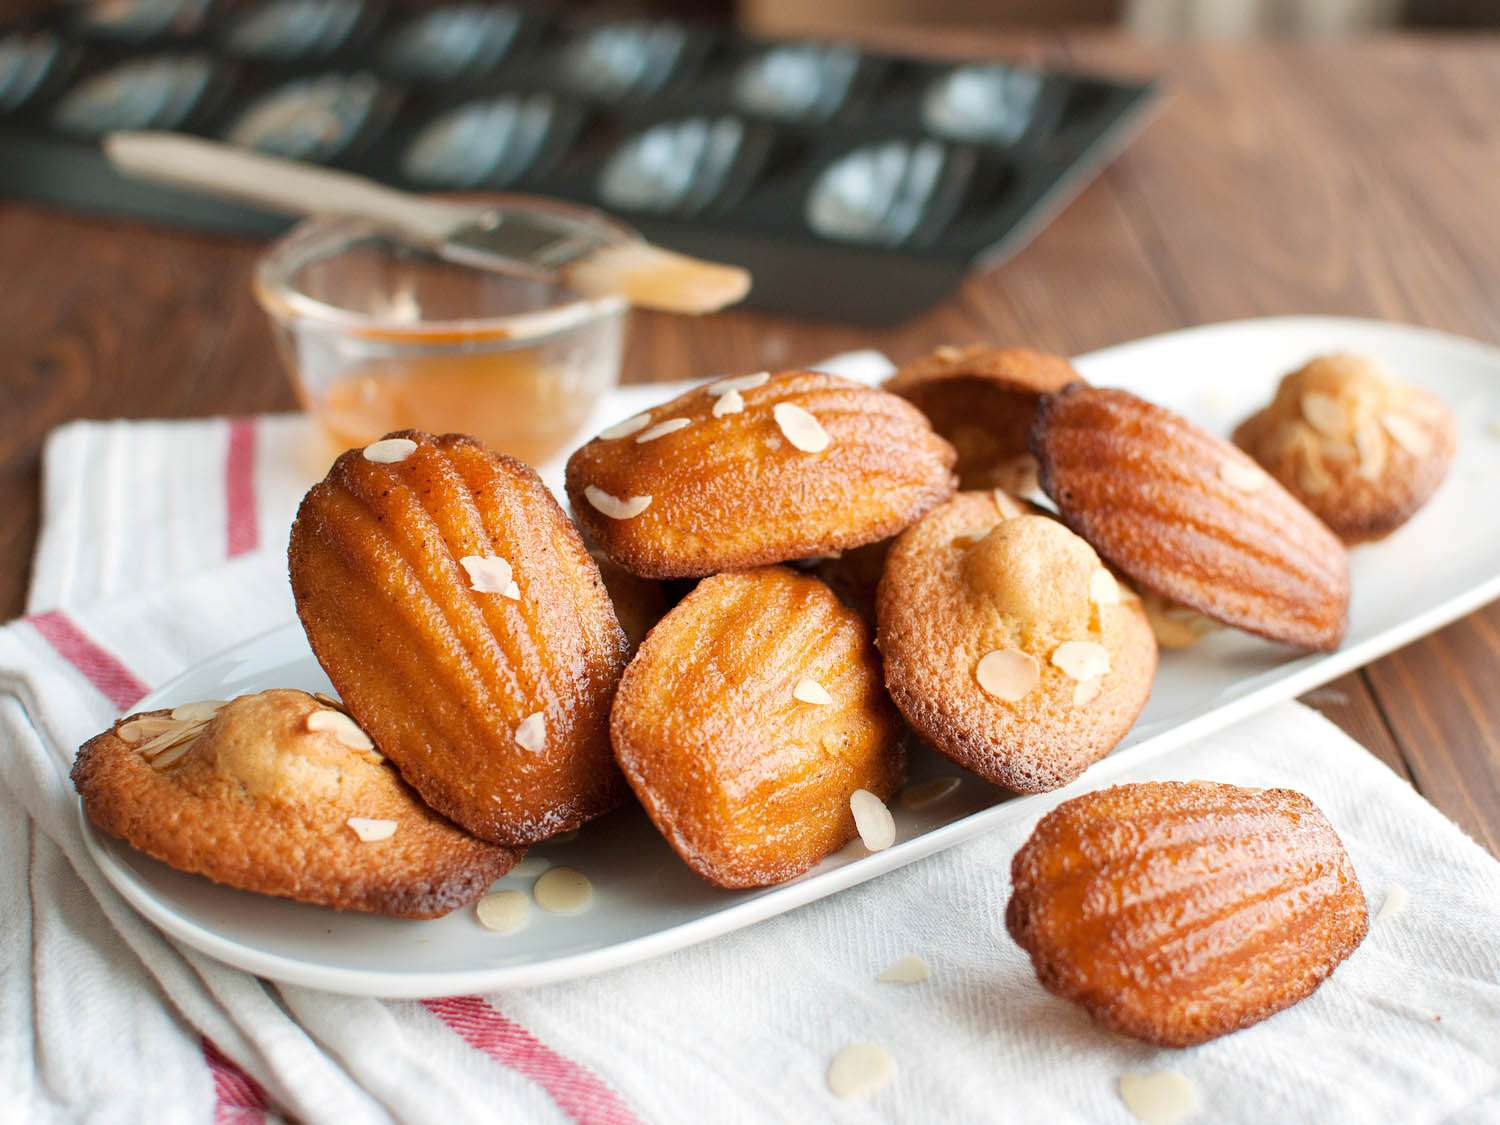 20171016-french-recipes-roundup-16.jpg